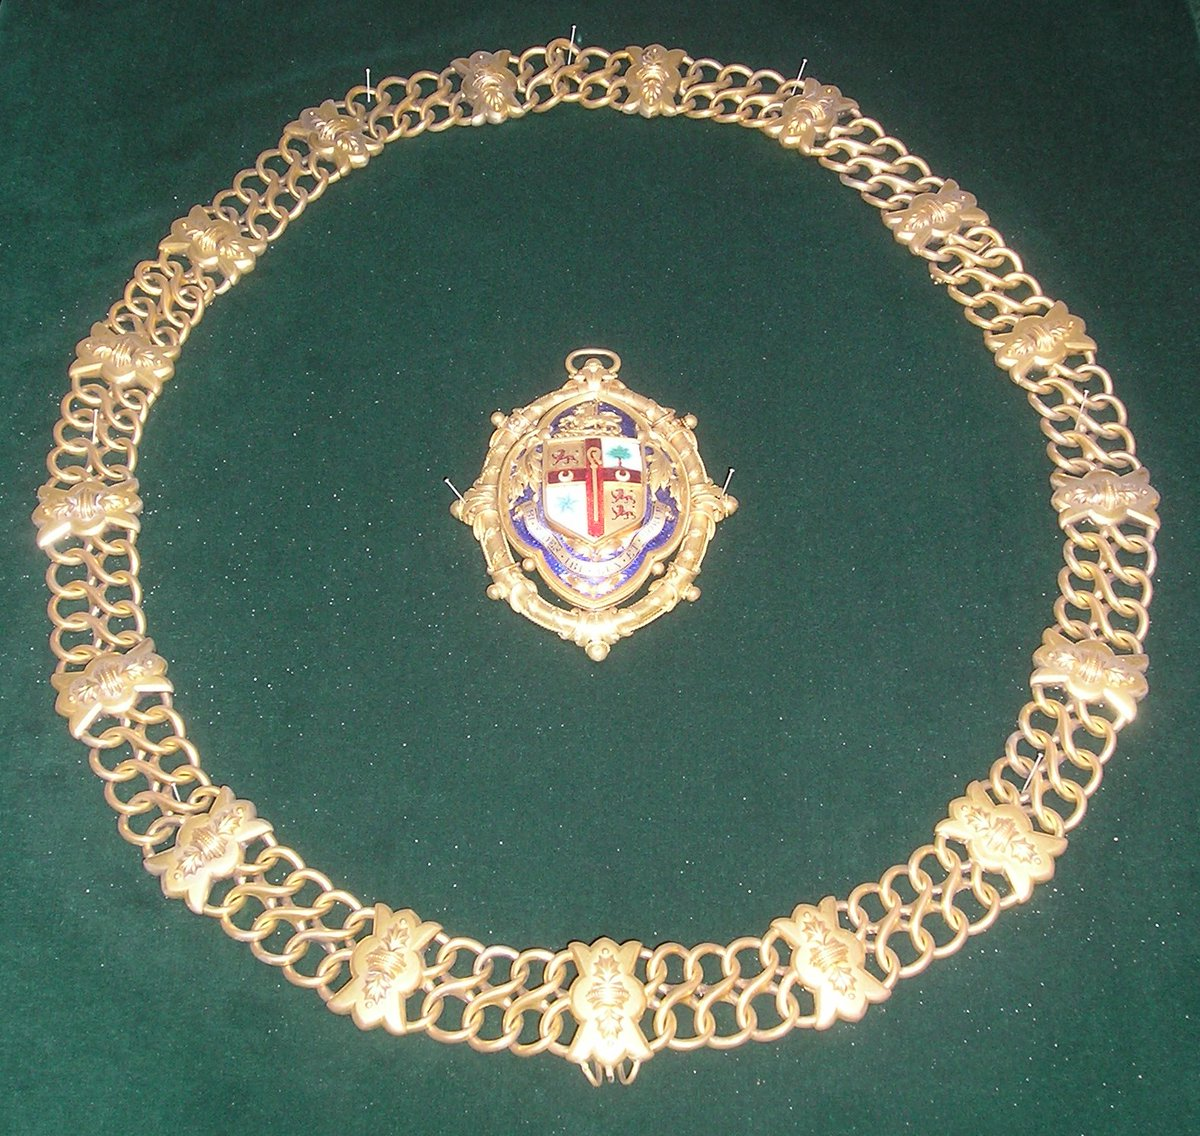 As a council museum some of our #BestBling is mayoral chains & badges - and we have heaps!  This is the chain & badge for the Borough of Birkenhead, incorporated into Wirral Council in 1974.  #CURATORBATTLE @YorkshireMuseumpic.twitter.com/M6JCFa0oVV